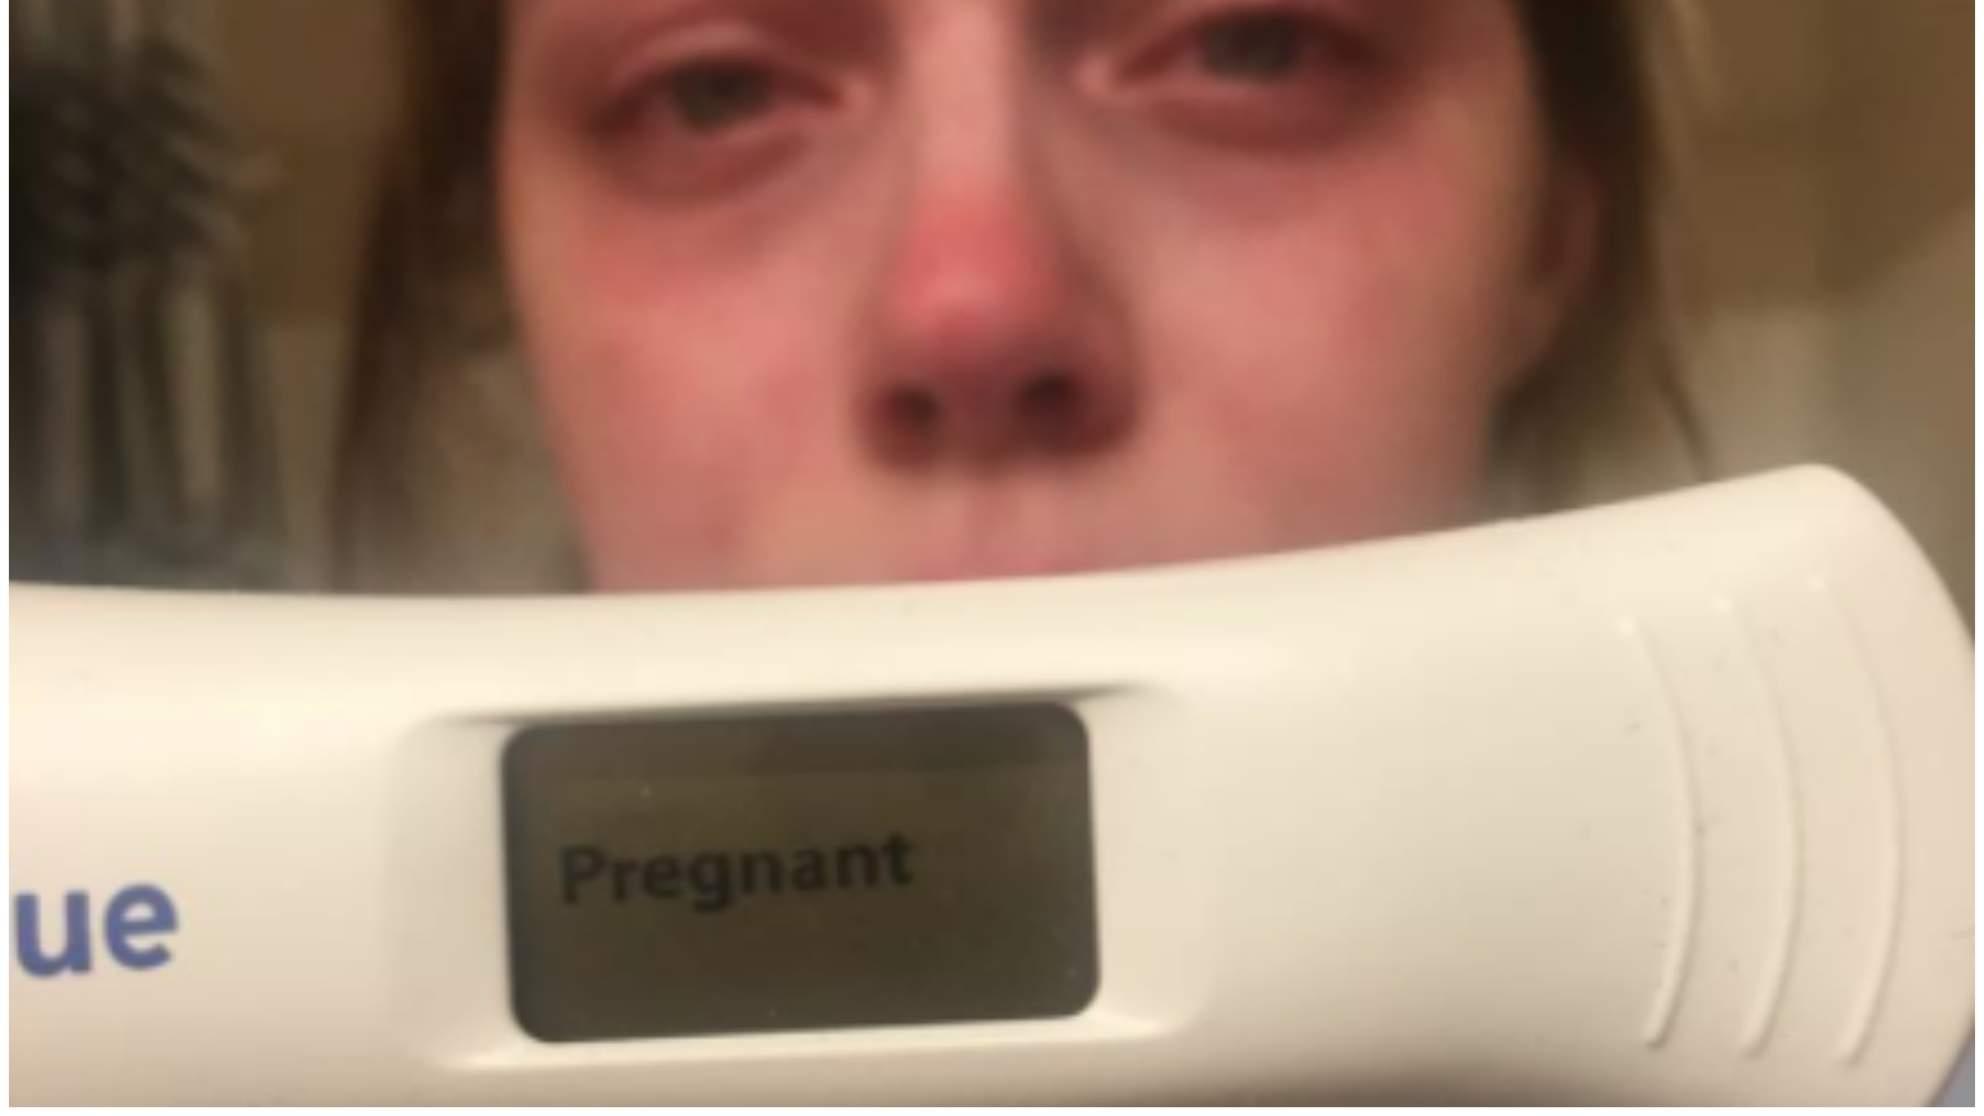 This Mom's Viral Facebook Post Shows Why Fake Pregnancy April Fools' Day Pranks Are Not Okay